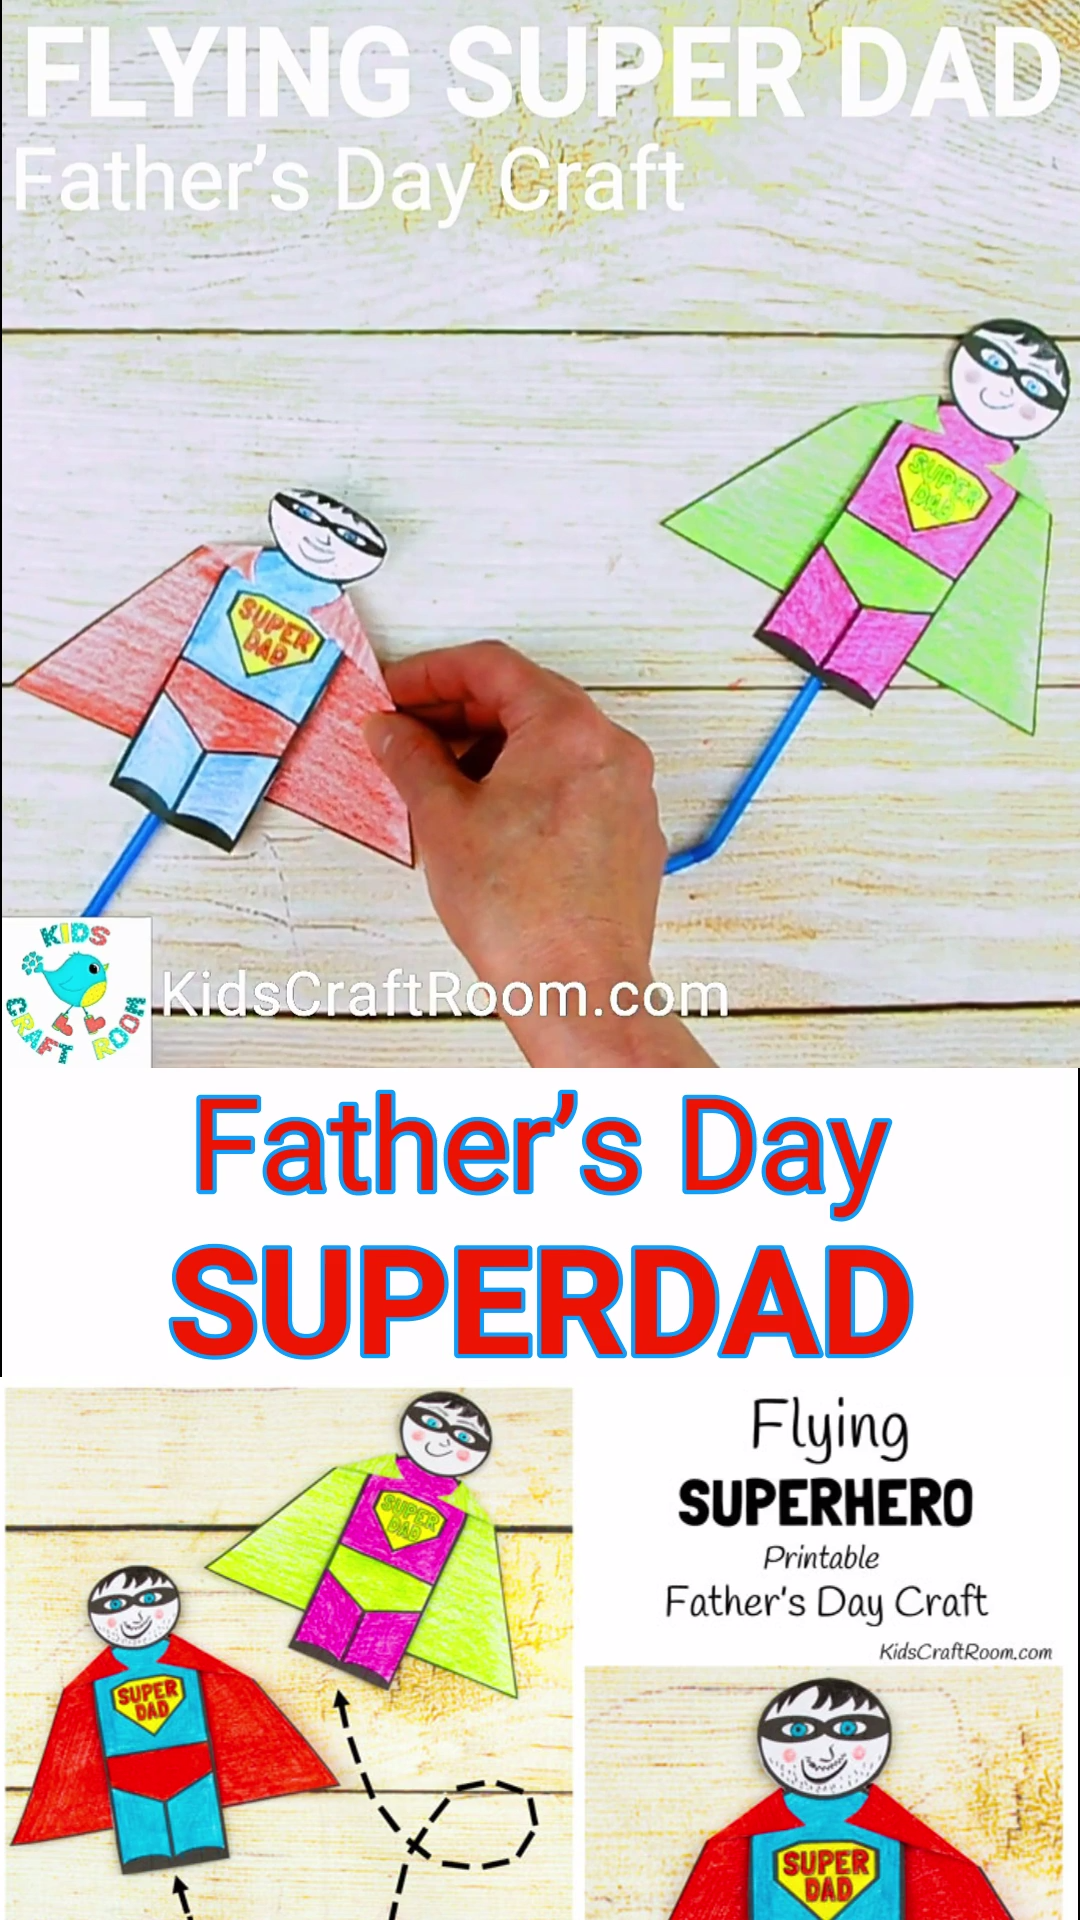 Flying Super Dad